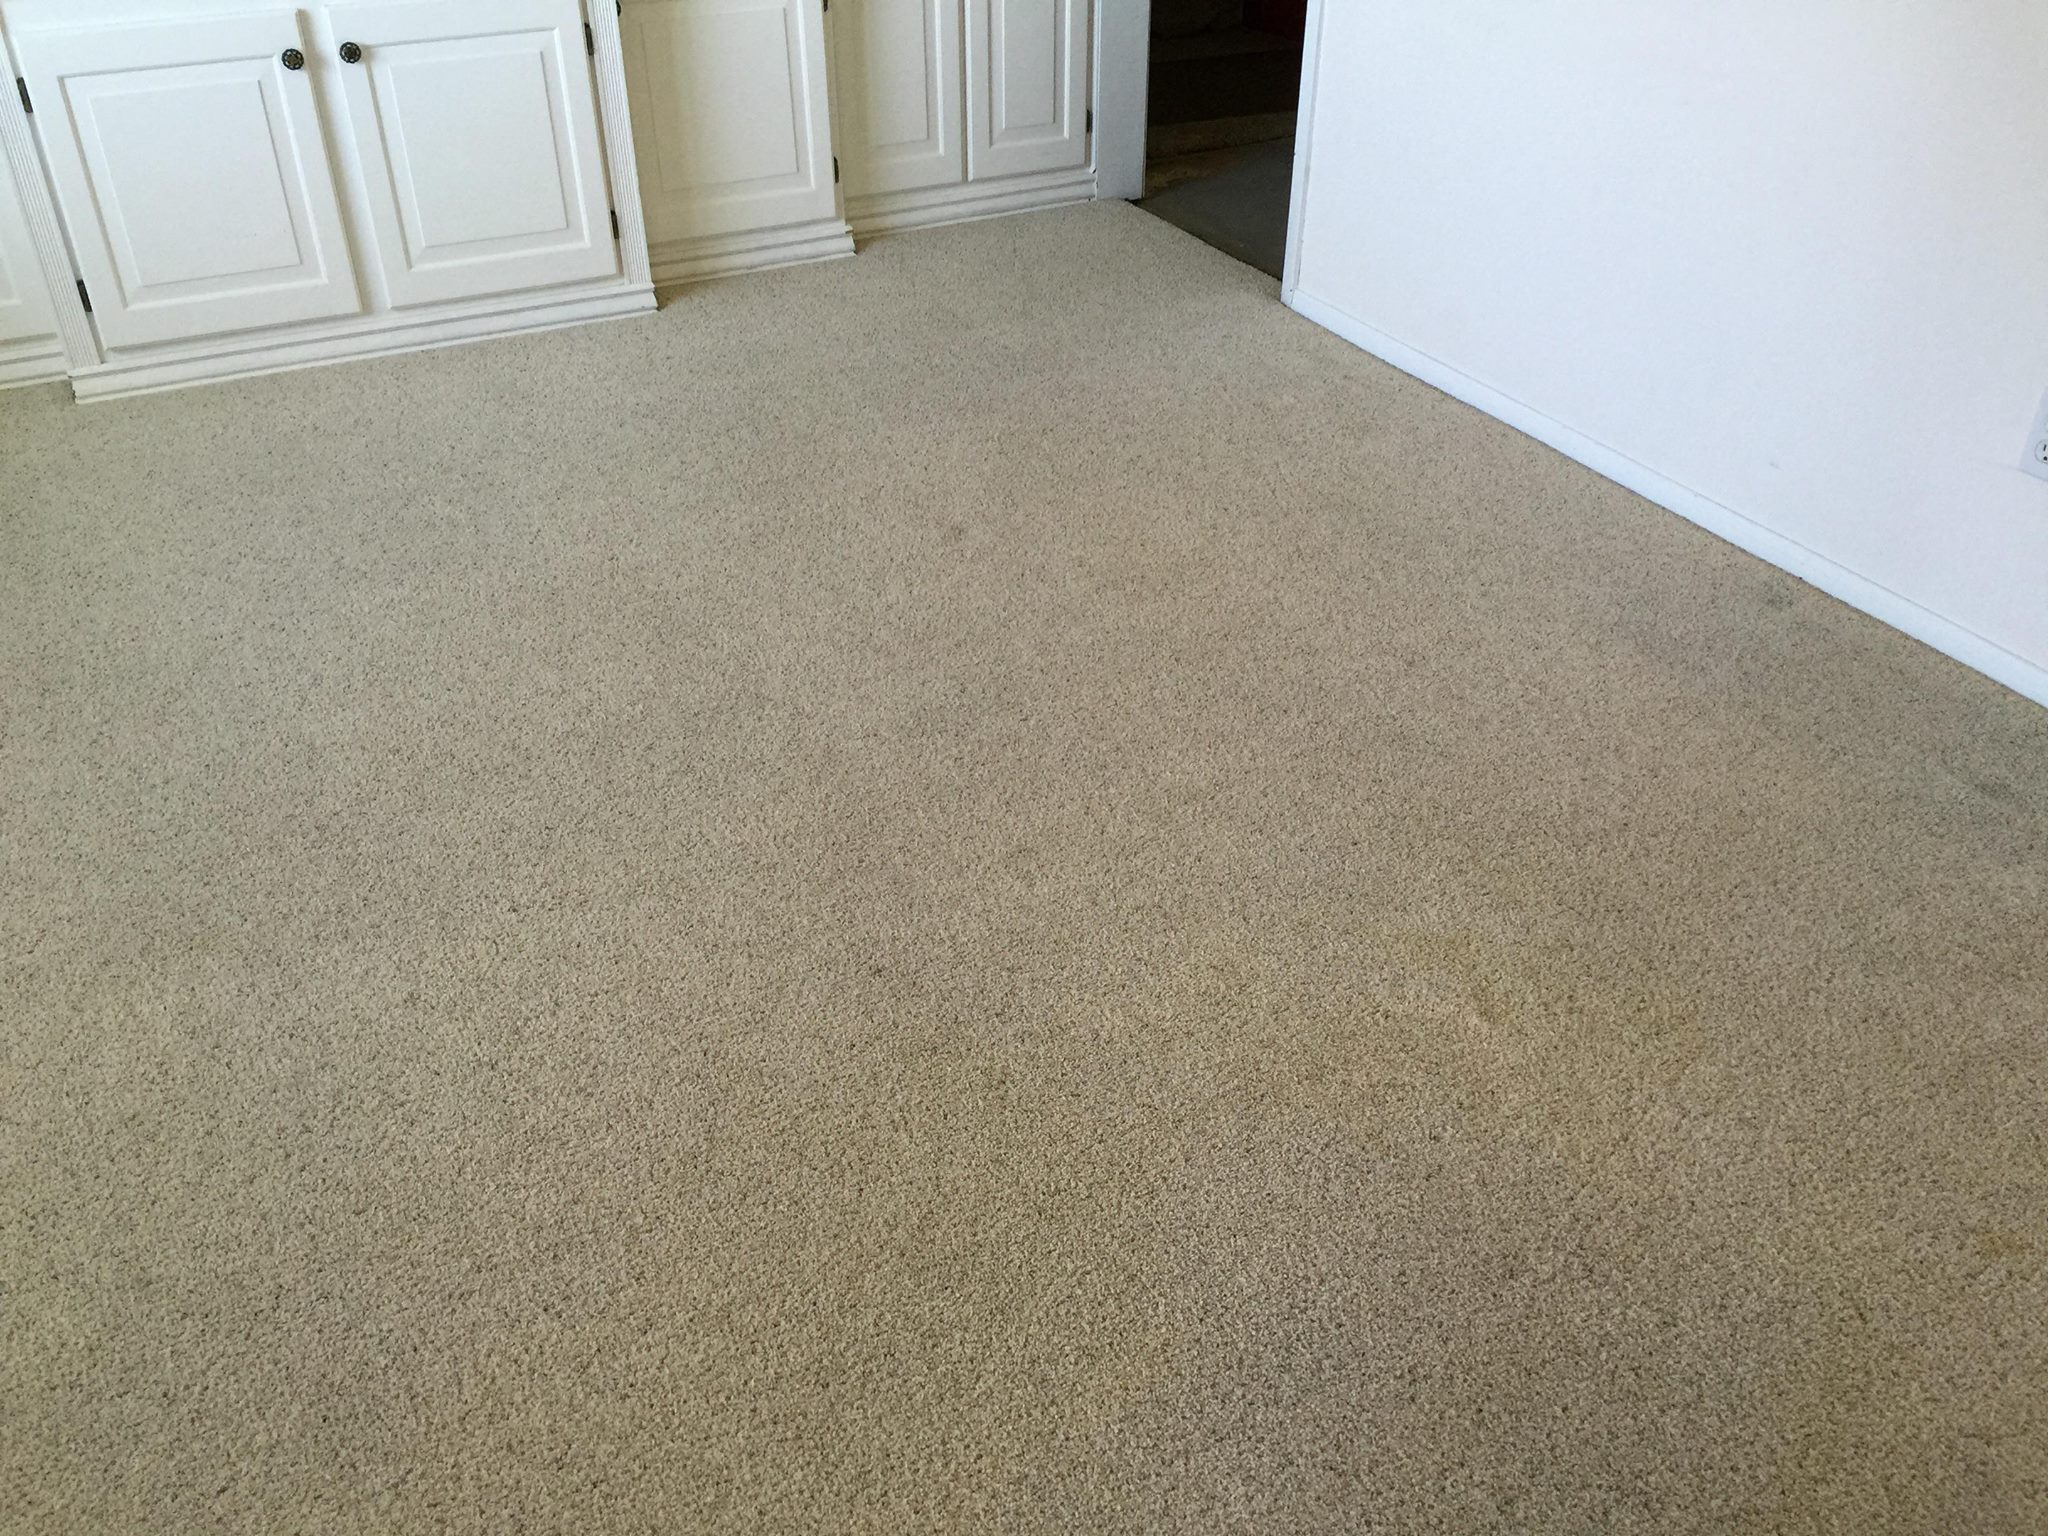 Carpet Cleaning Pet Stains Amp Odor Removal In Ogden Ut